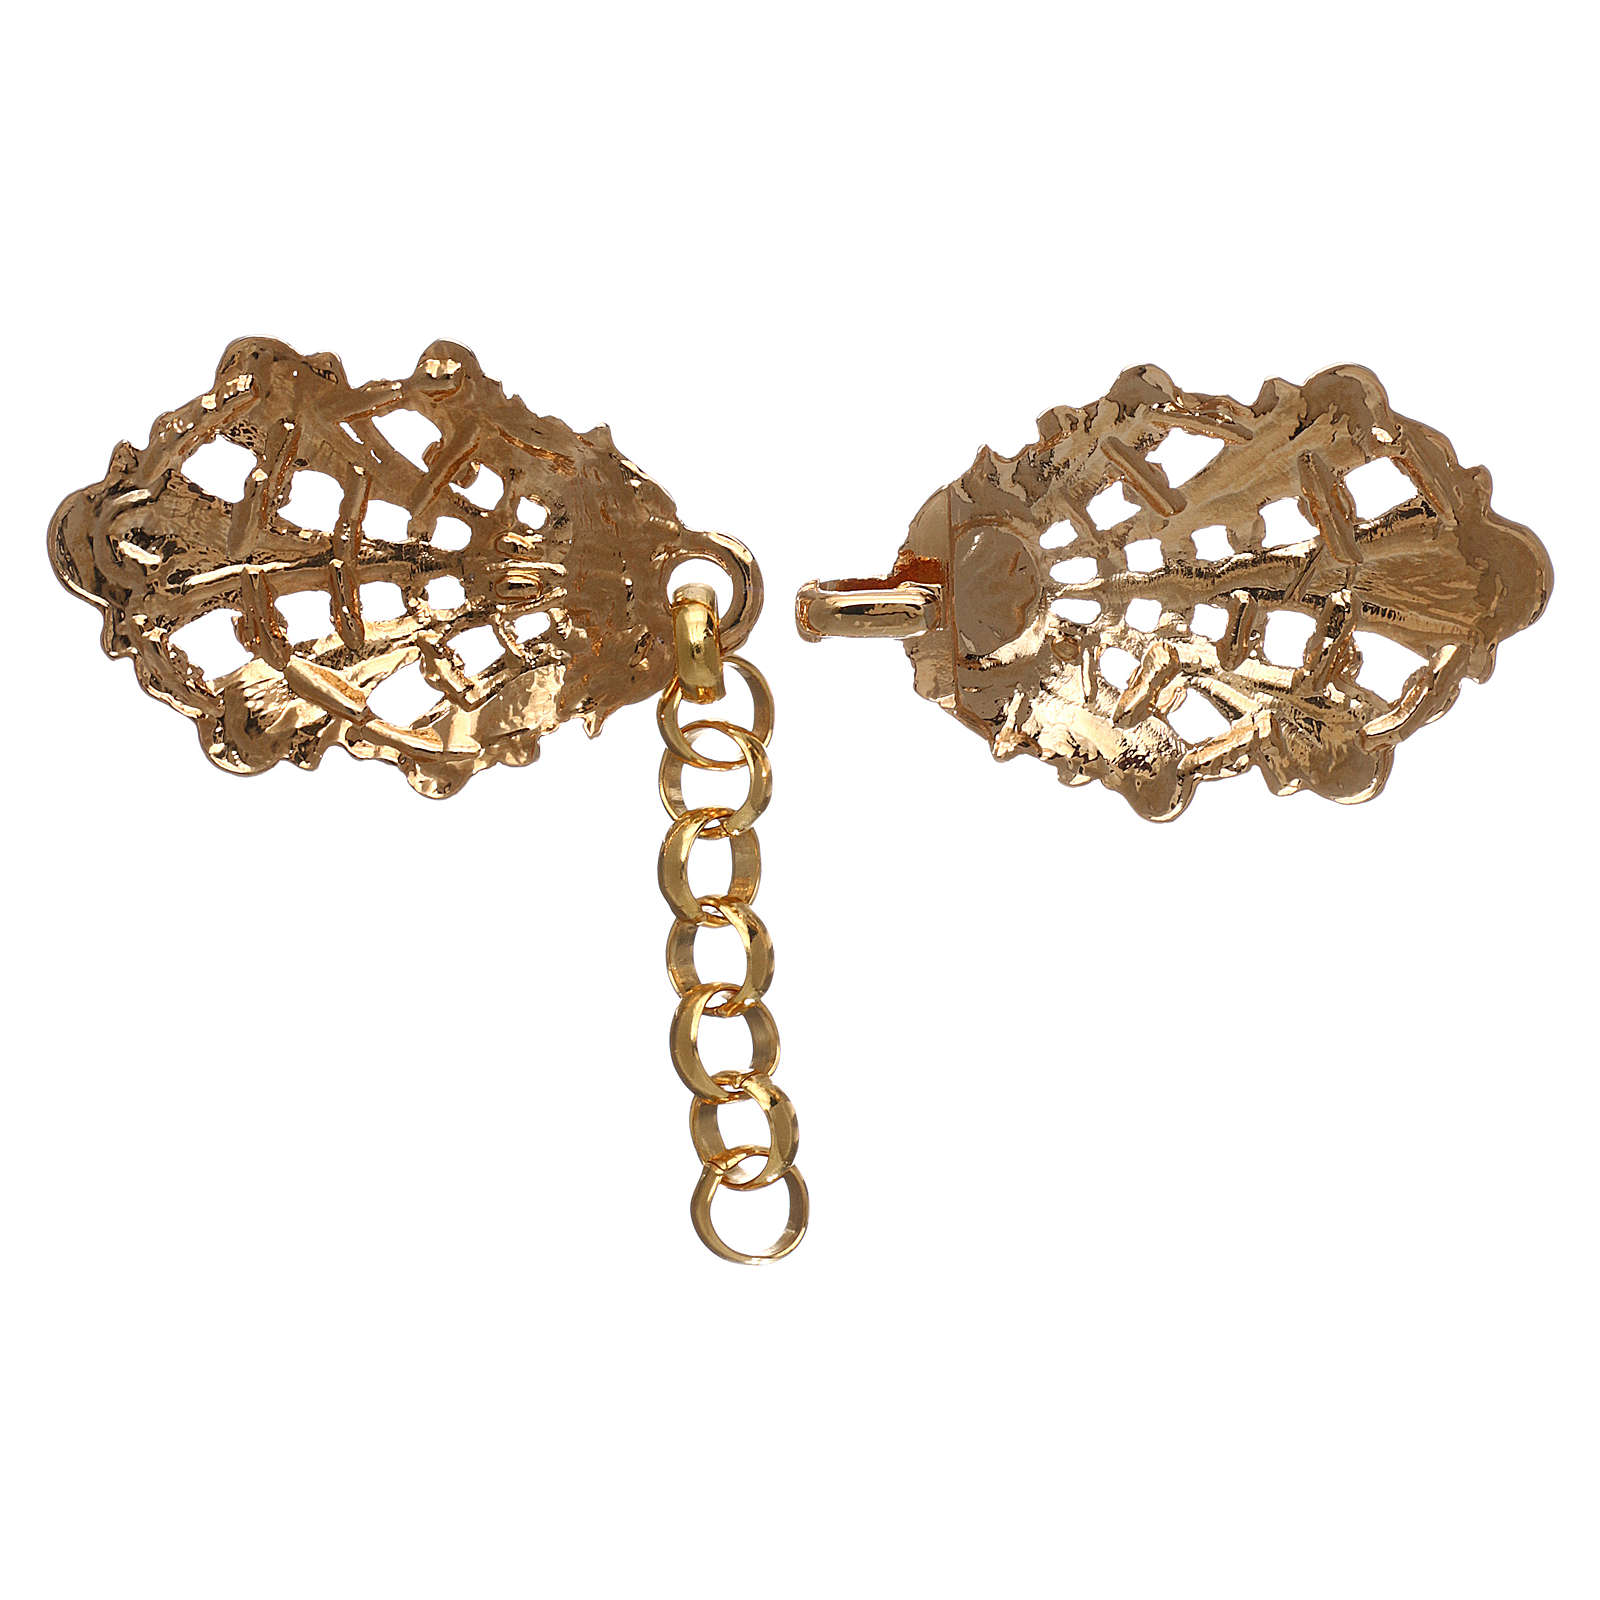 Cope clasp with chain, leaves motif 4